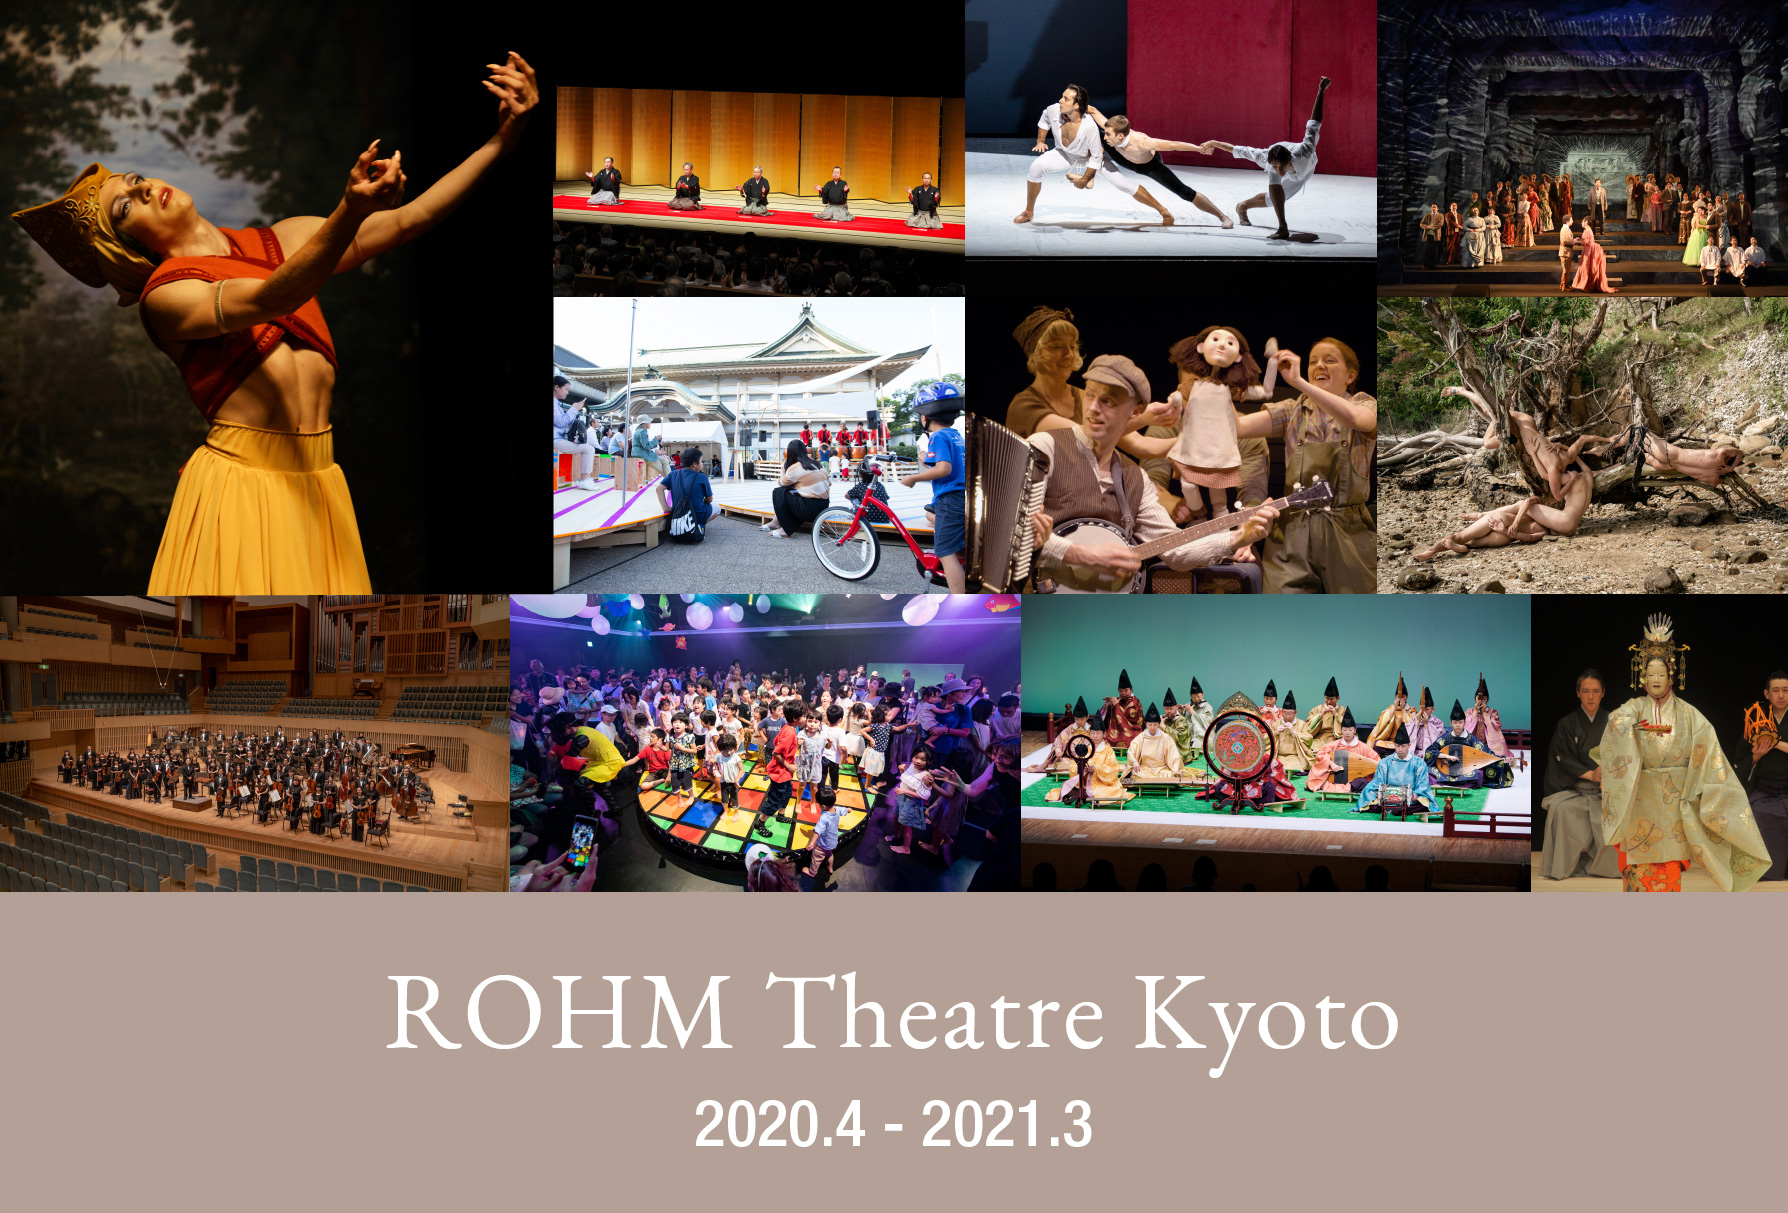 ROHM Theatre Kyoto Program 2020